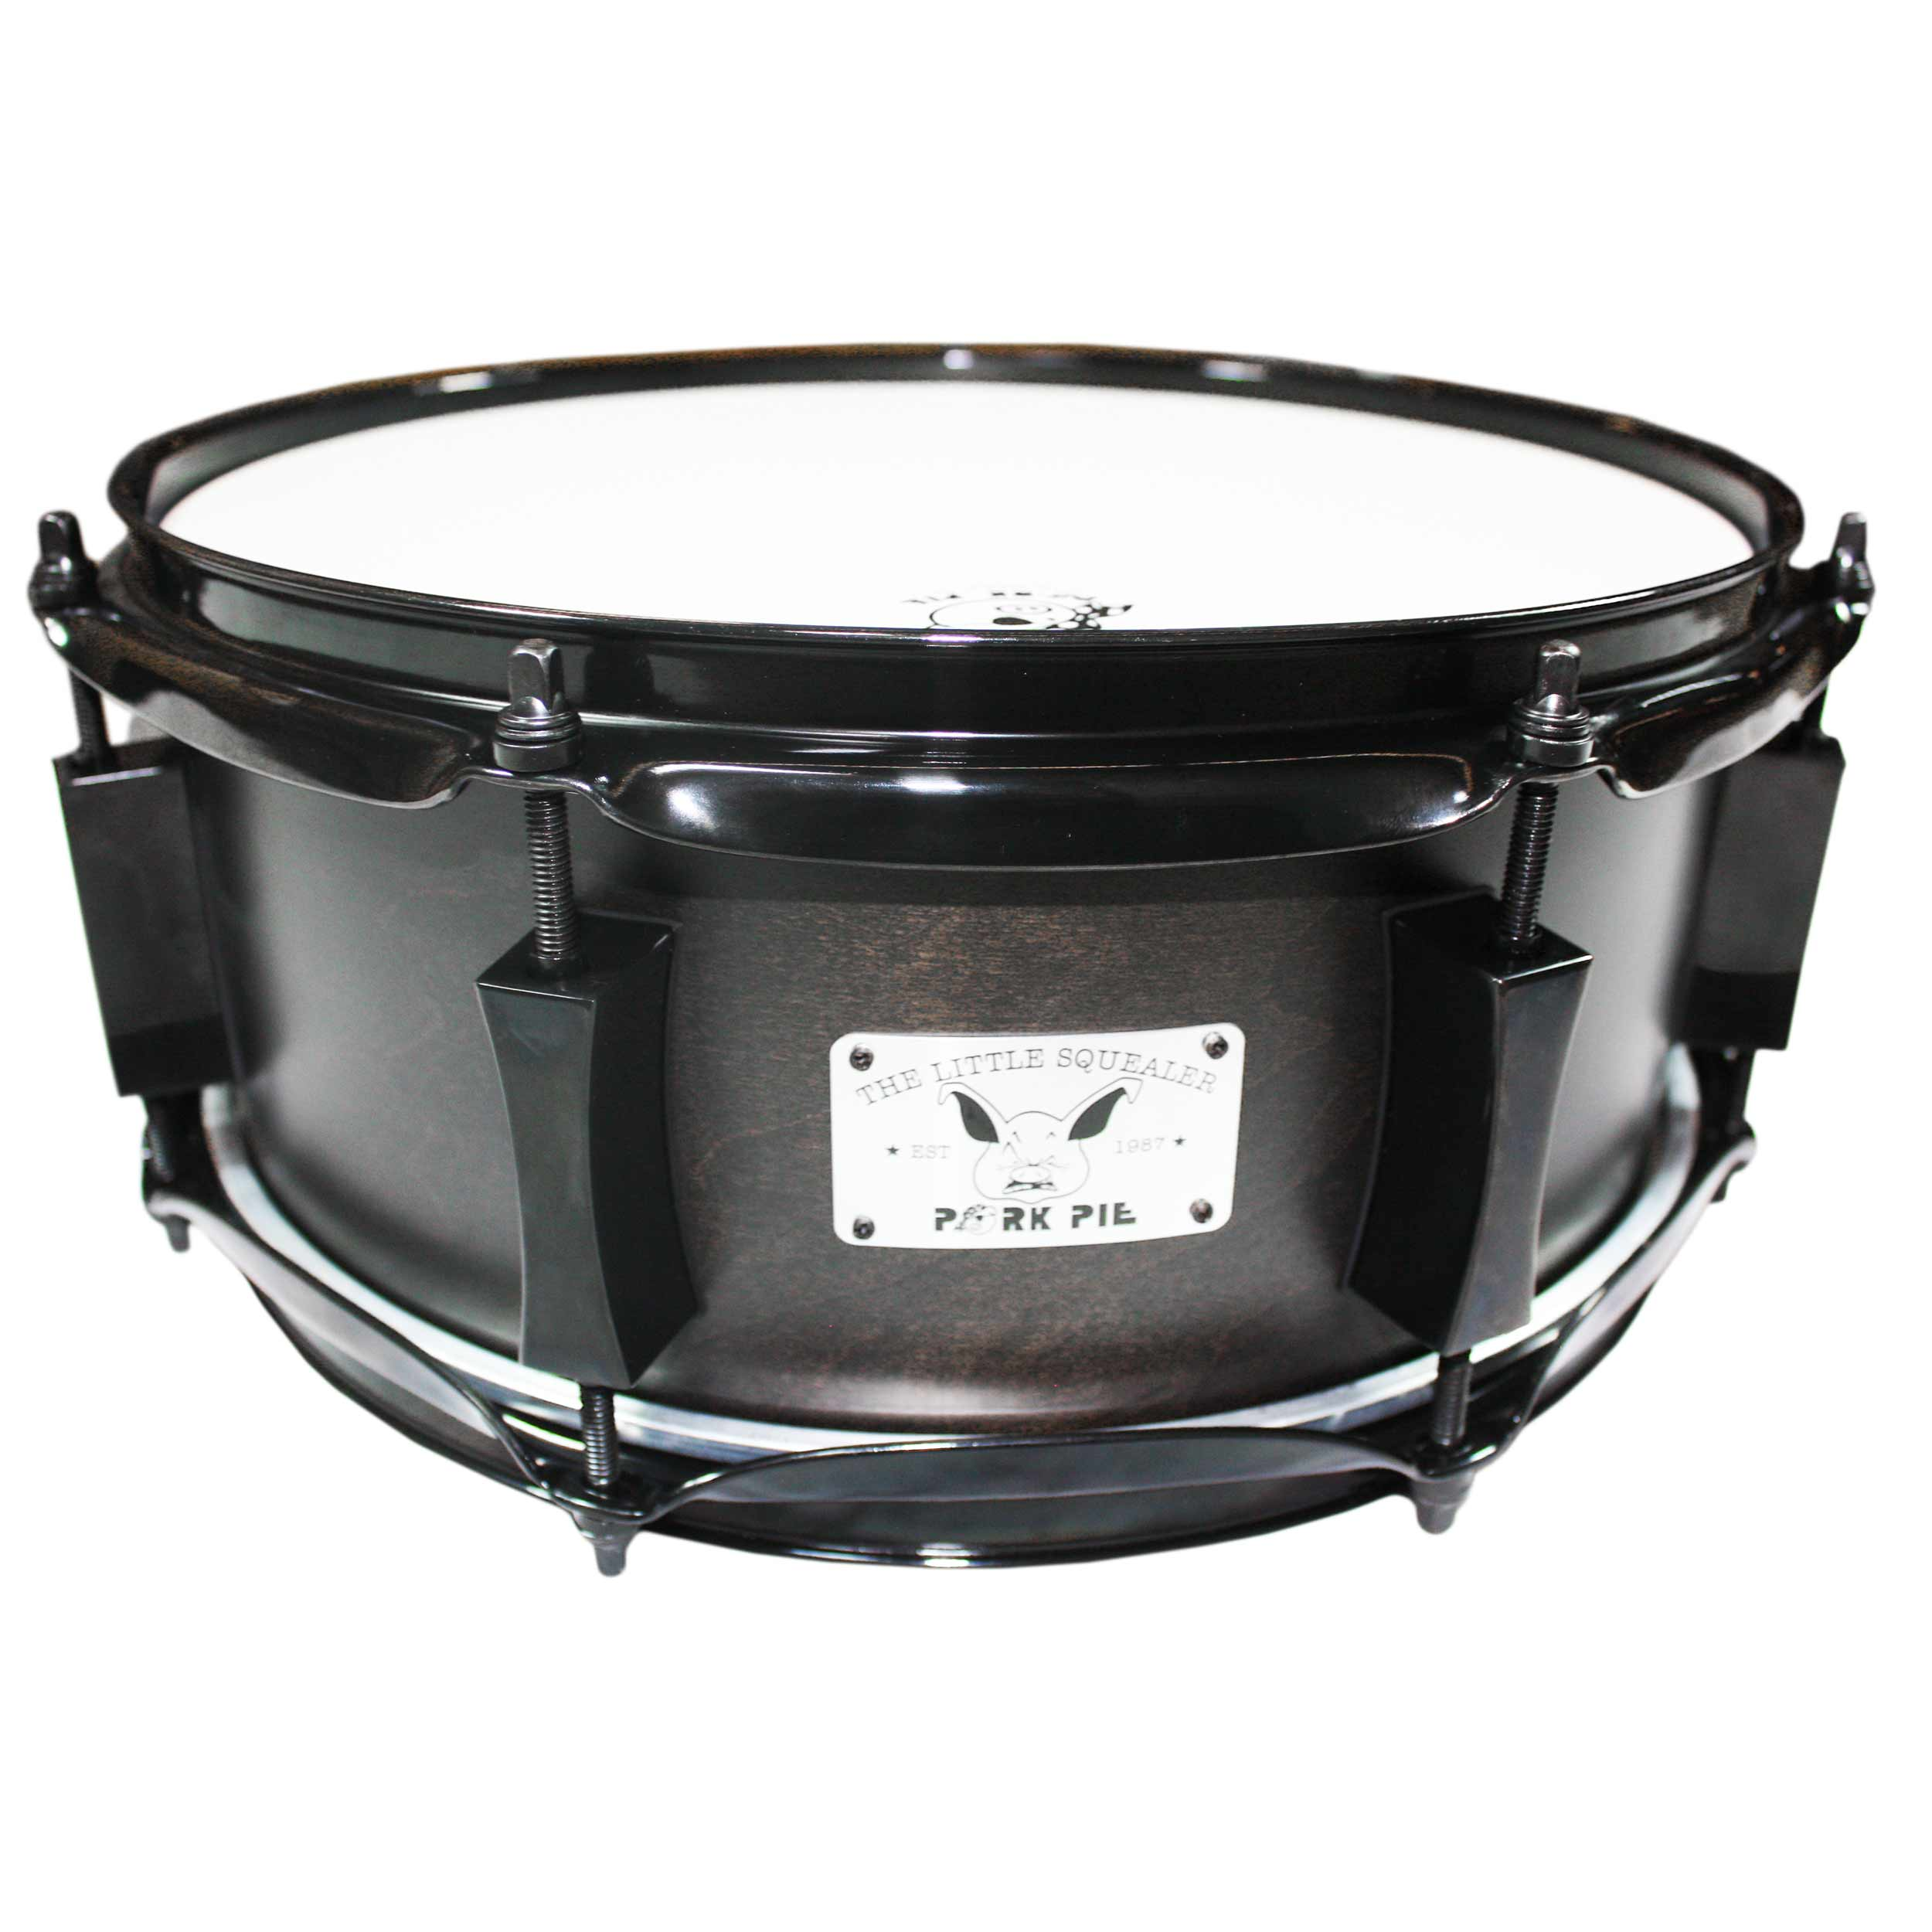 "Pork Pie 5"" x 12"" Black Squealer Snare Drum With Black Hardware"